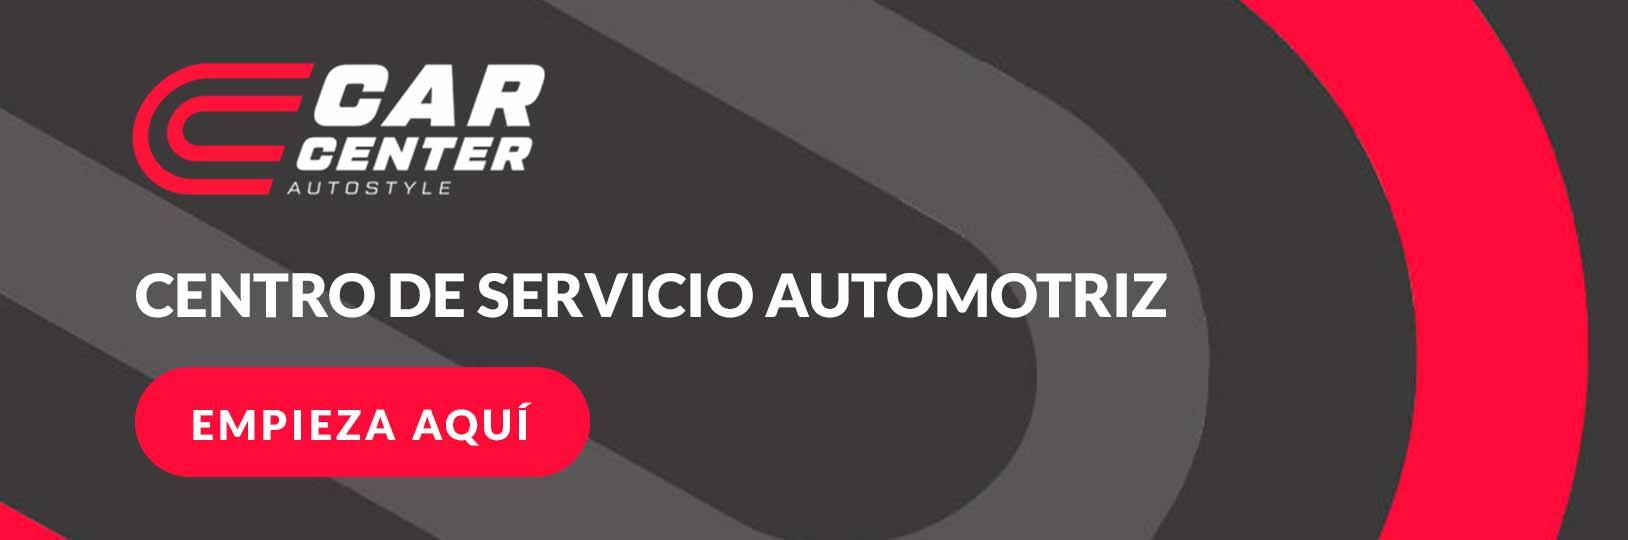 Car Center: El Servicio que estabas esperando